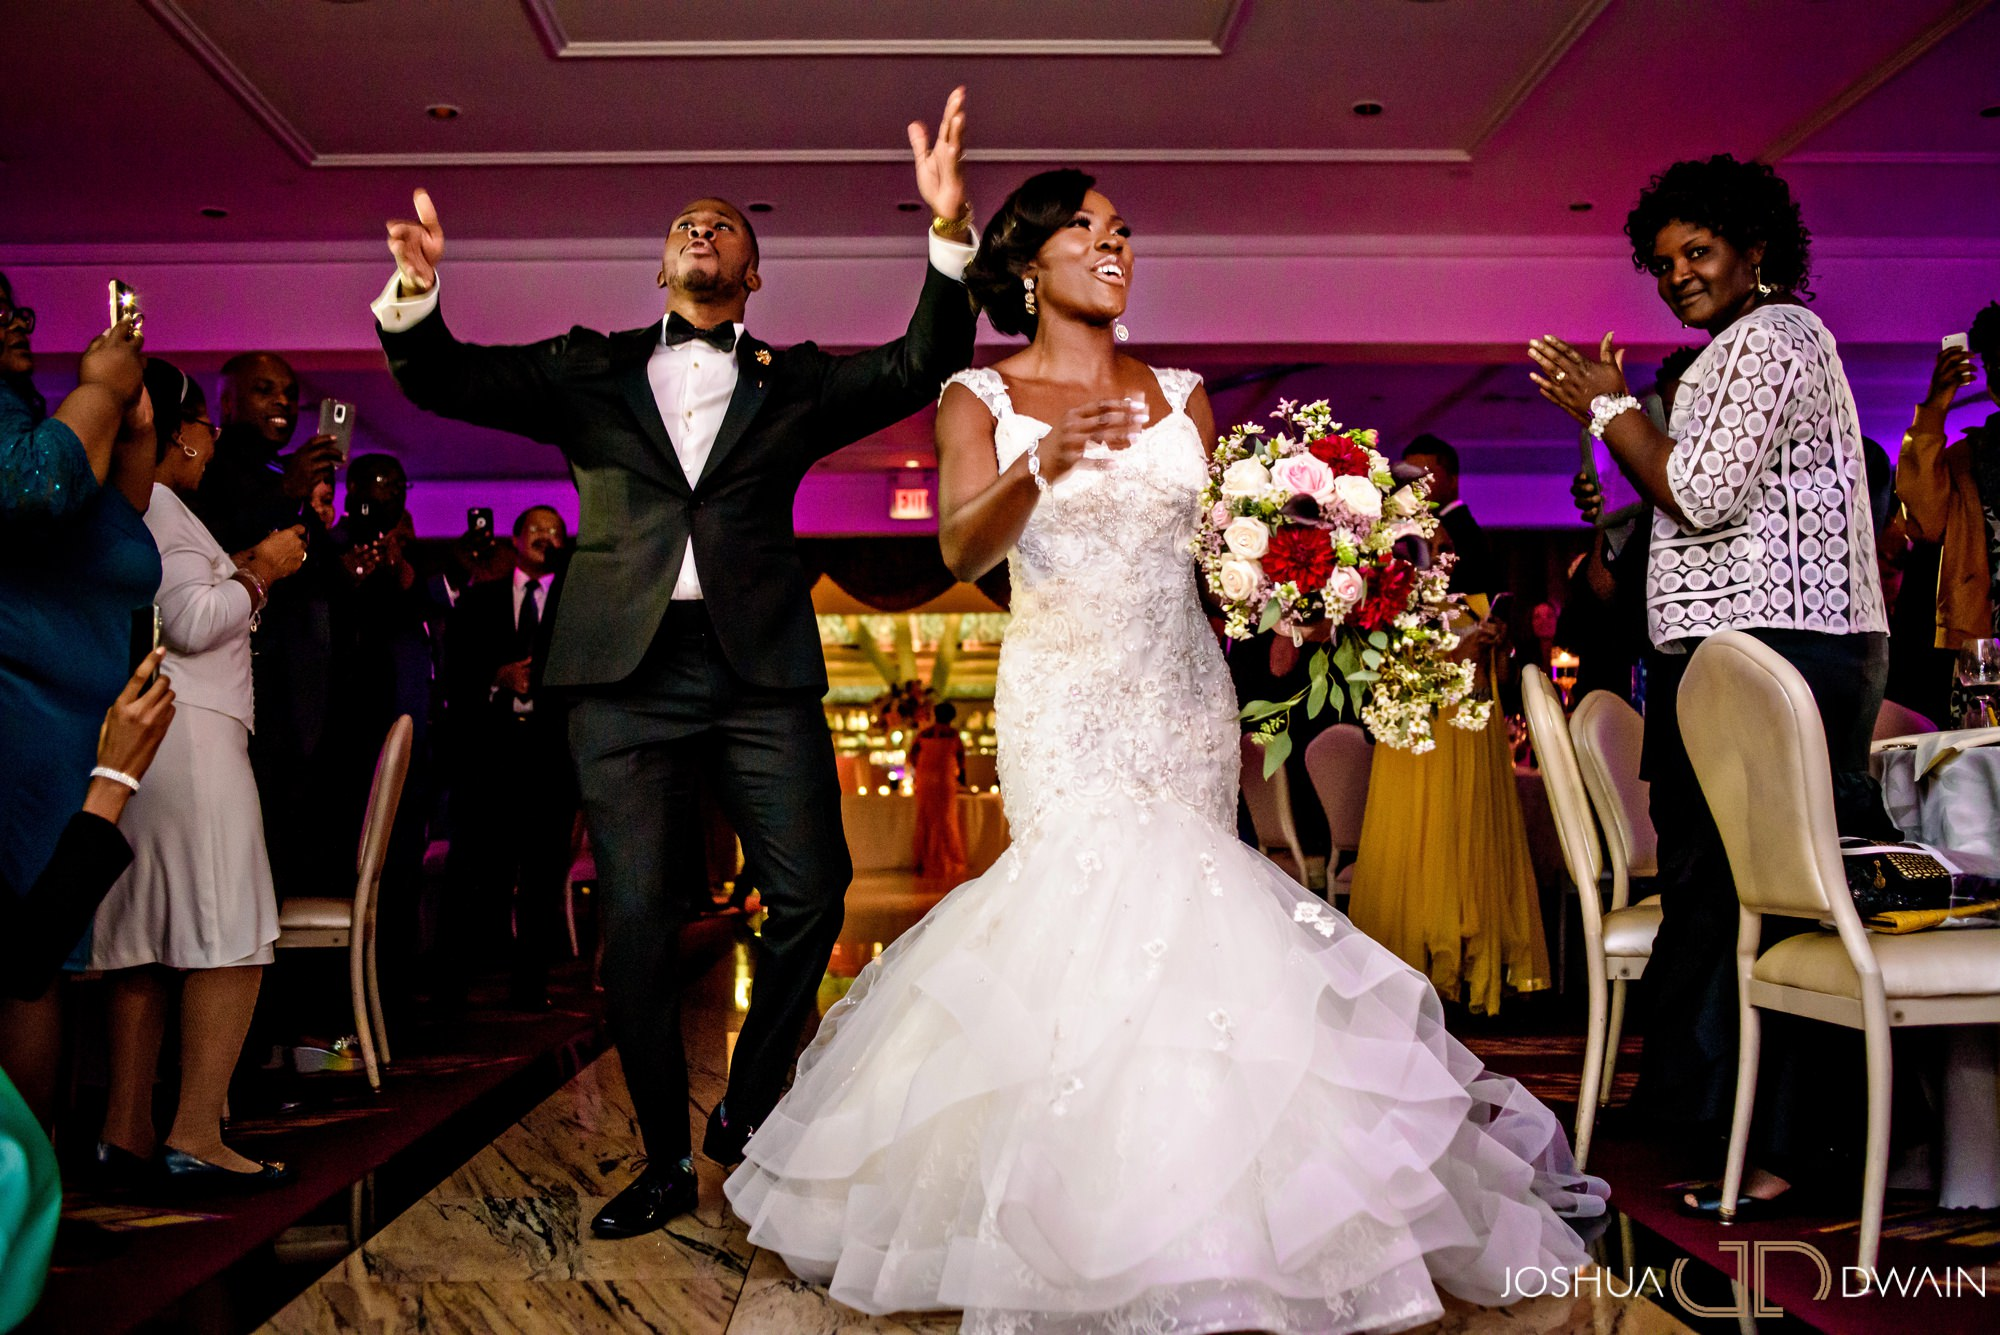 stephanie-richard-30-westmount-country-club-joshua-dwain-nj-wedding-photography